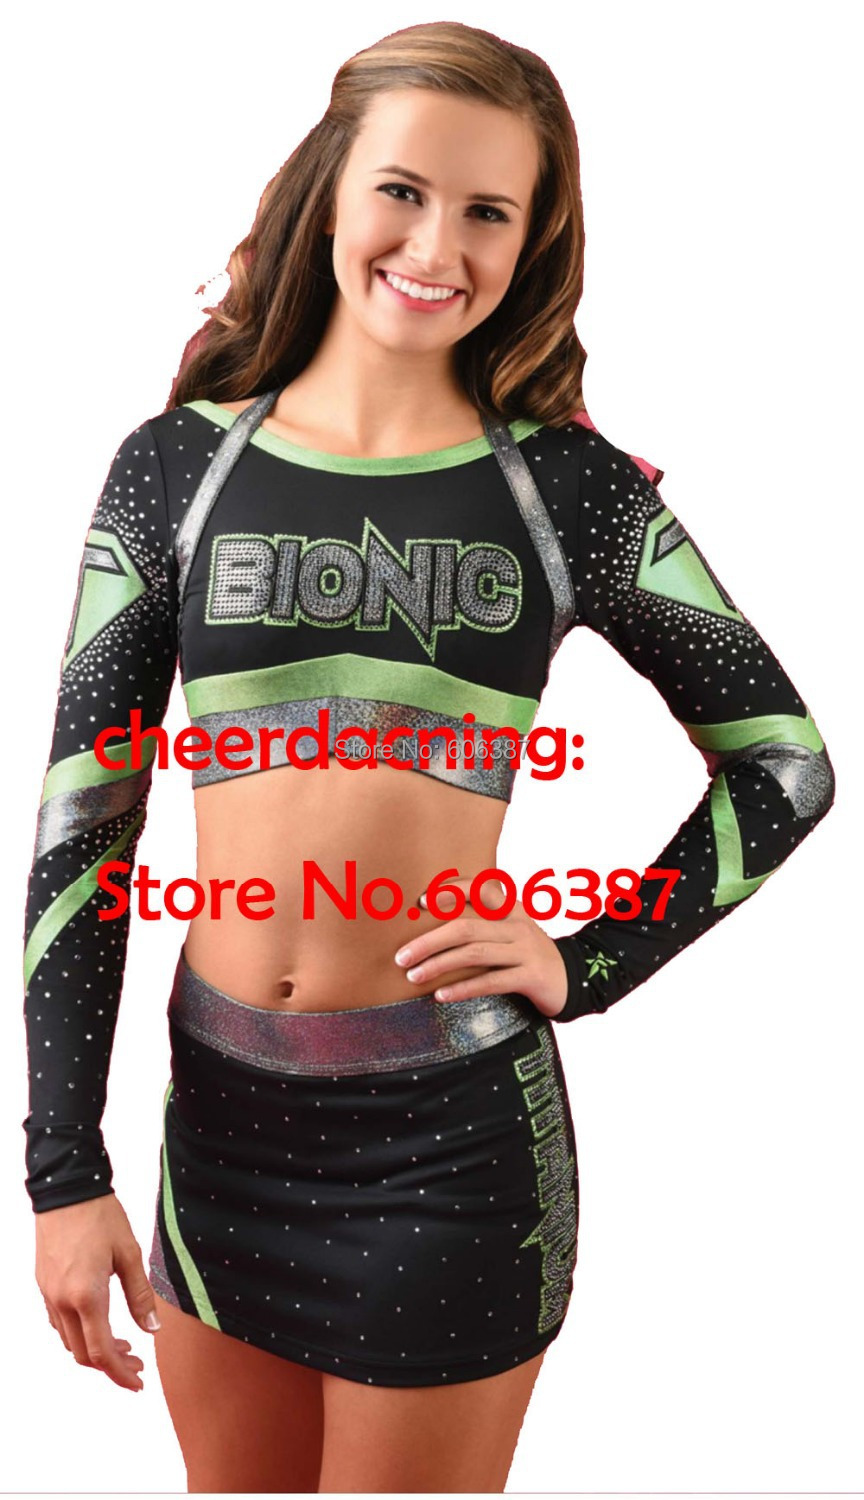 2015 style lycra fabric Girls cheerleader uniform 1 set cheerleader costume pick size outfit top +shorts with rhistone недорого